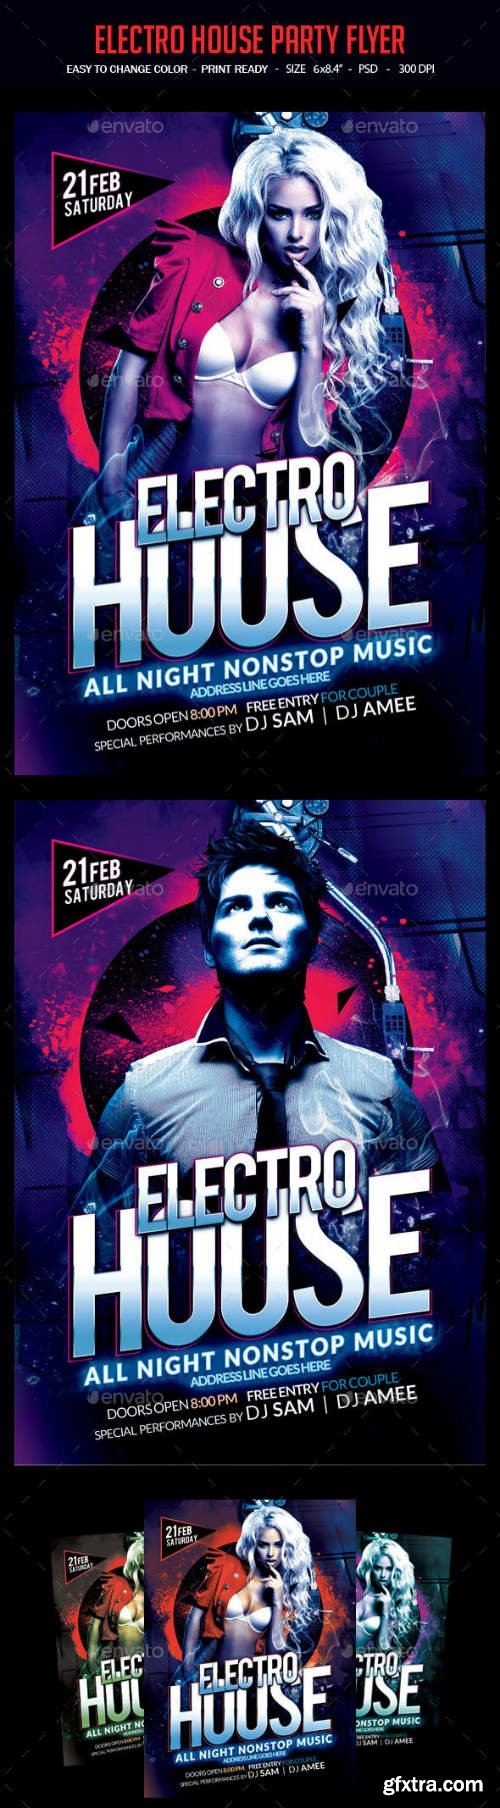 GR - Electro House Party Flyer 14469218